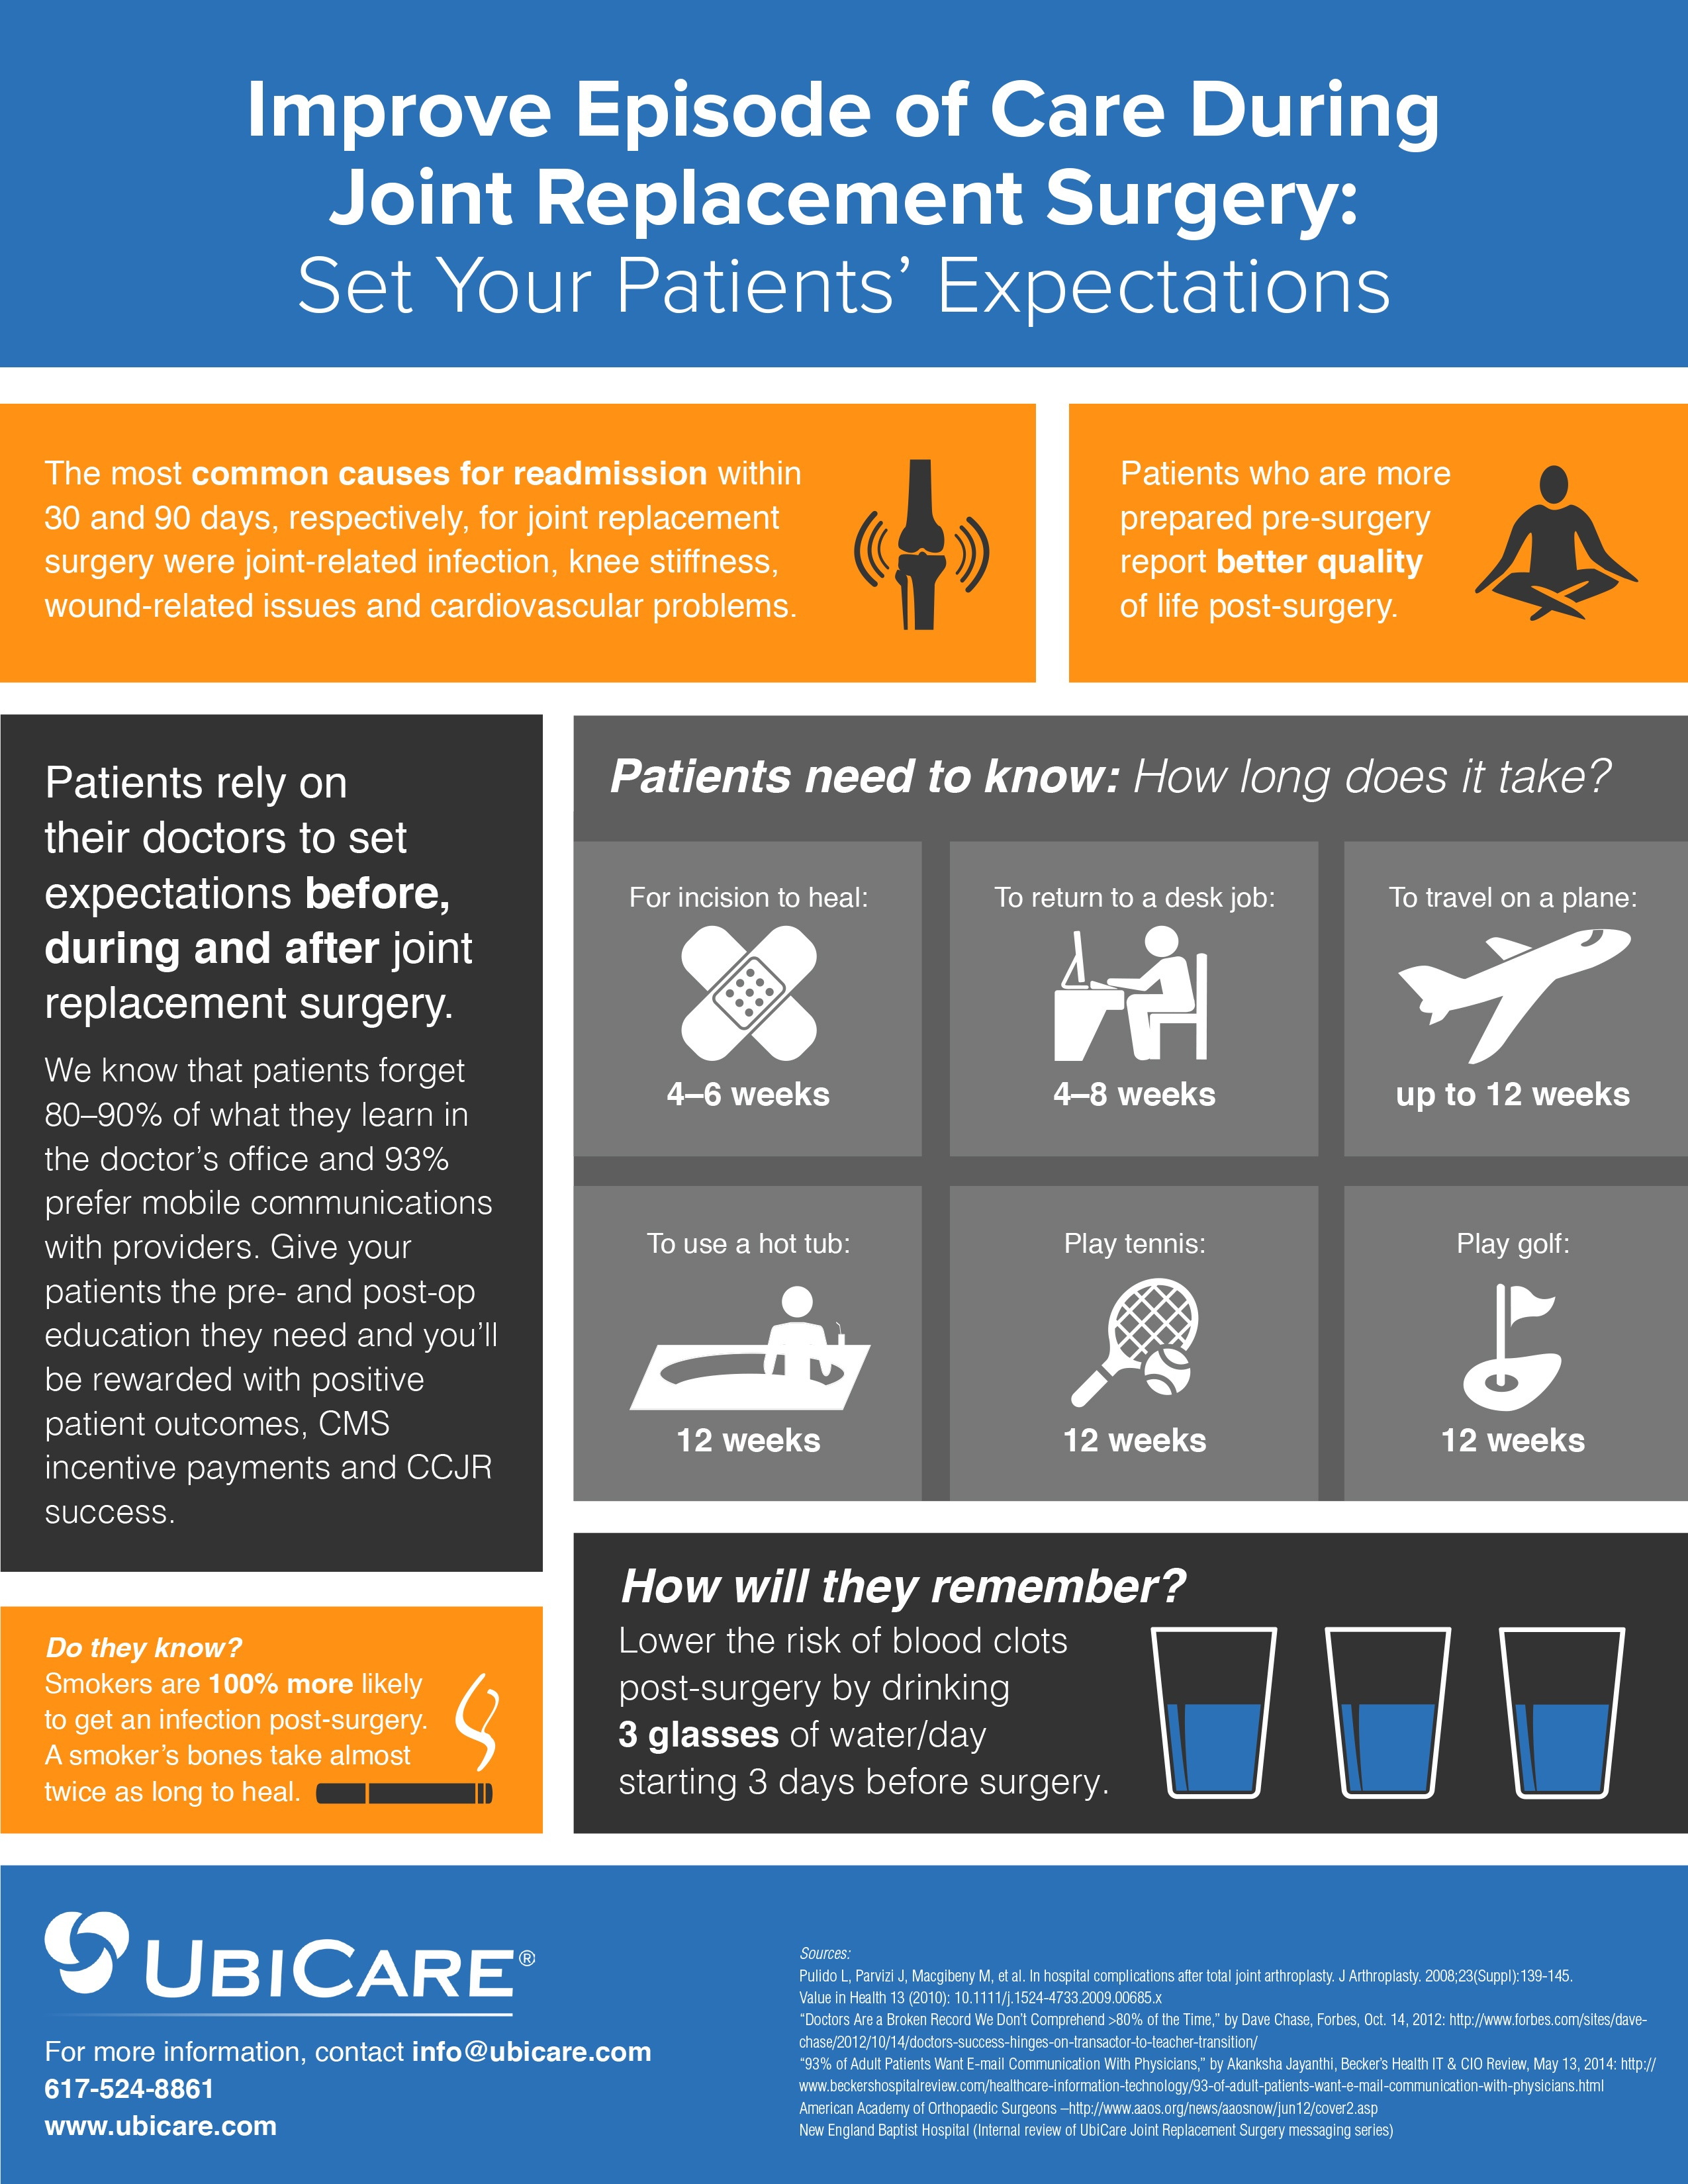 Hospitals benefit from setting patient expectations early